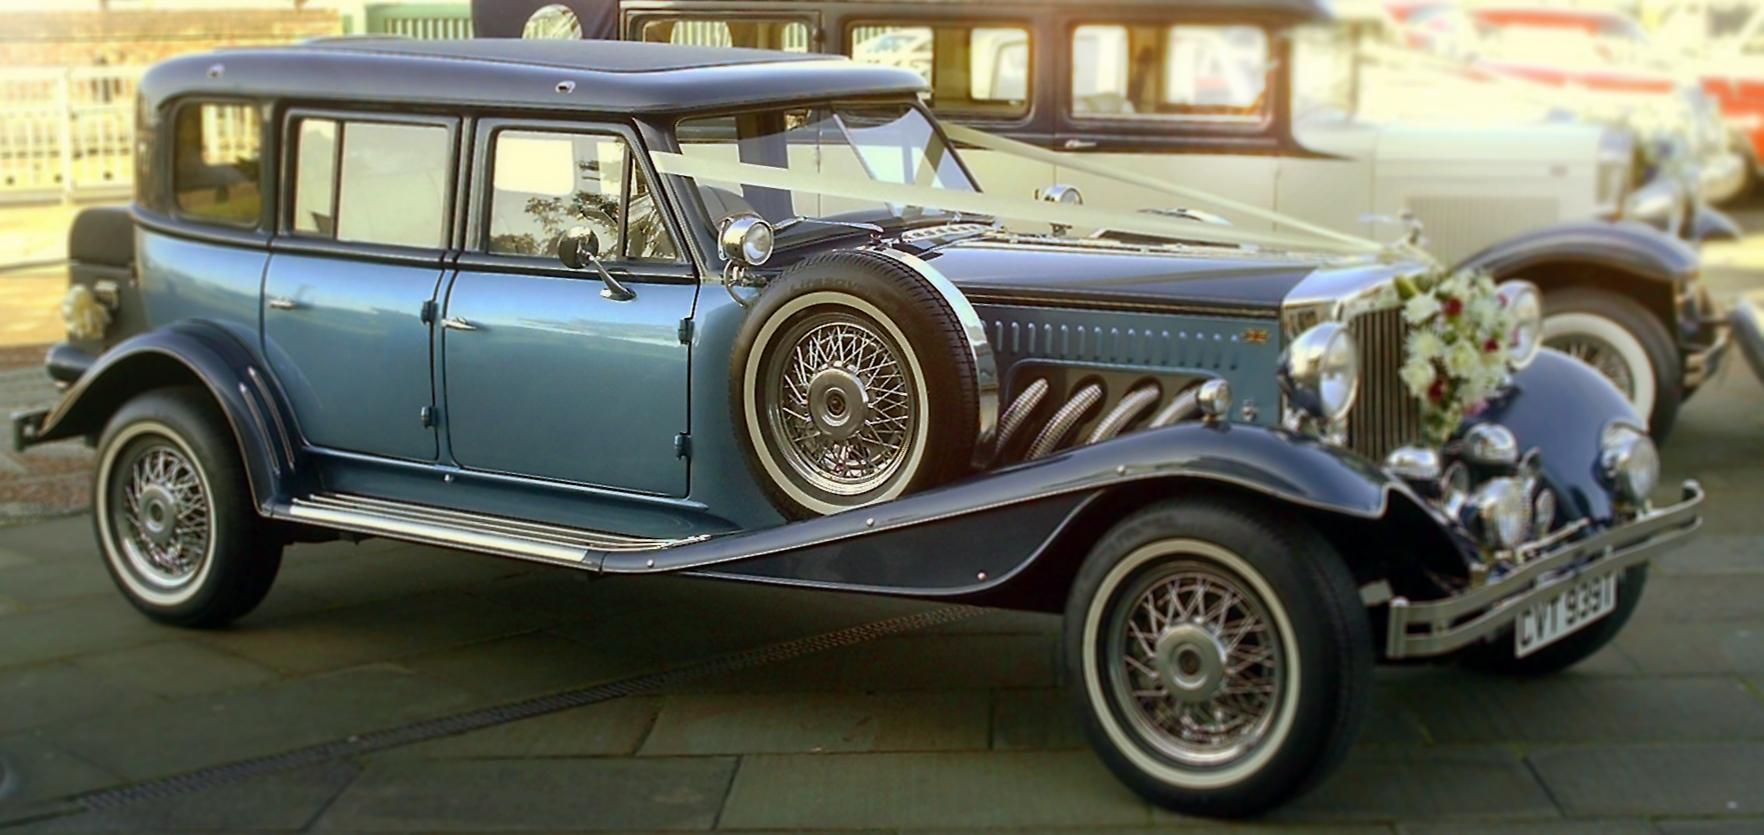 File:Old Wedding Car.jpg - Wikimedia Commons